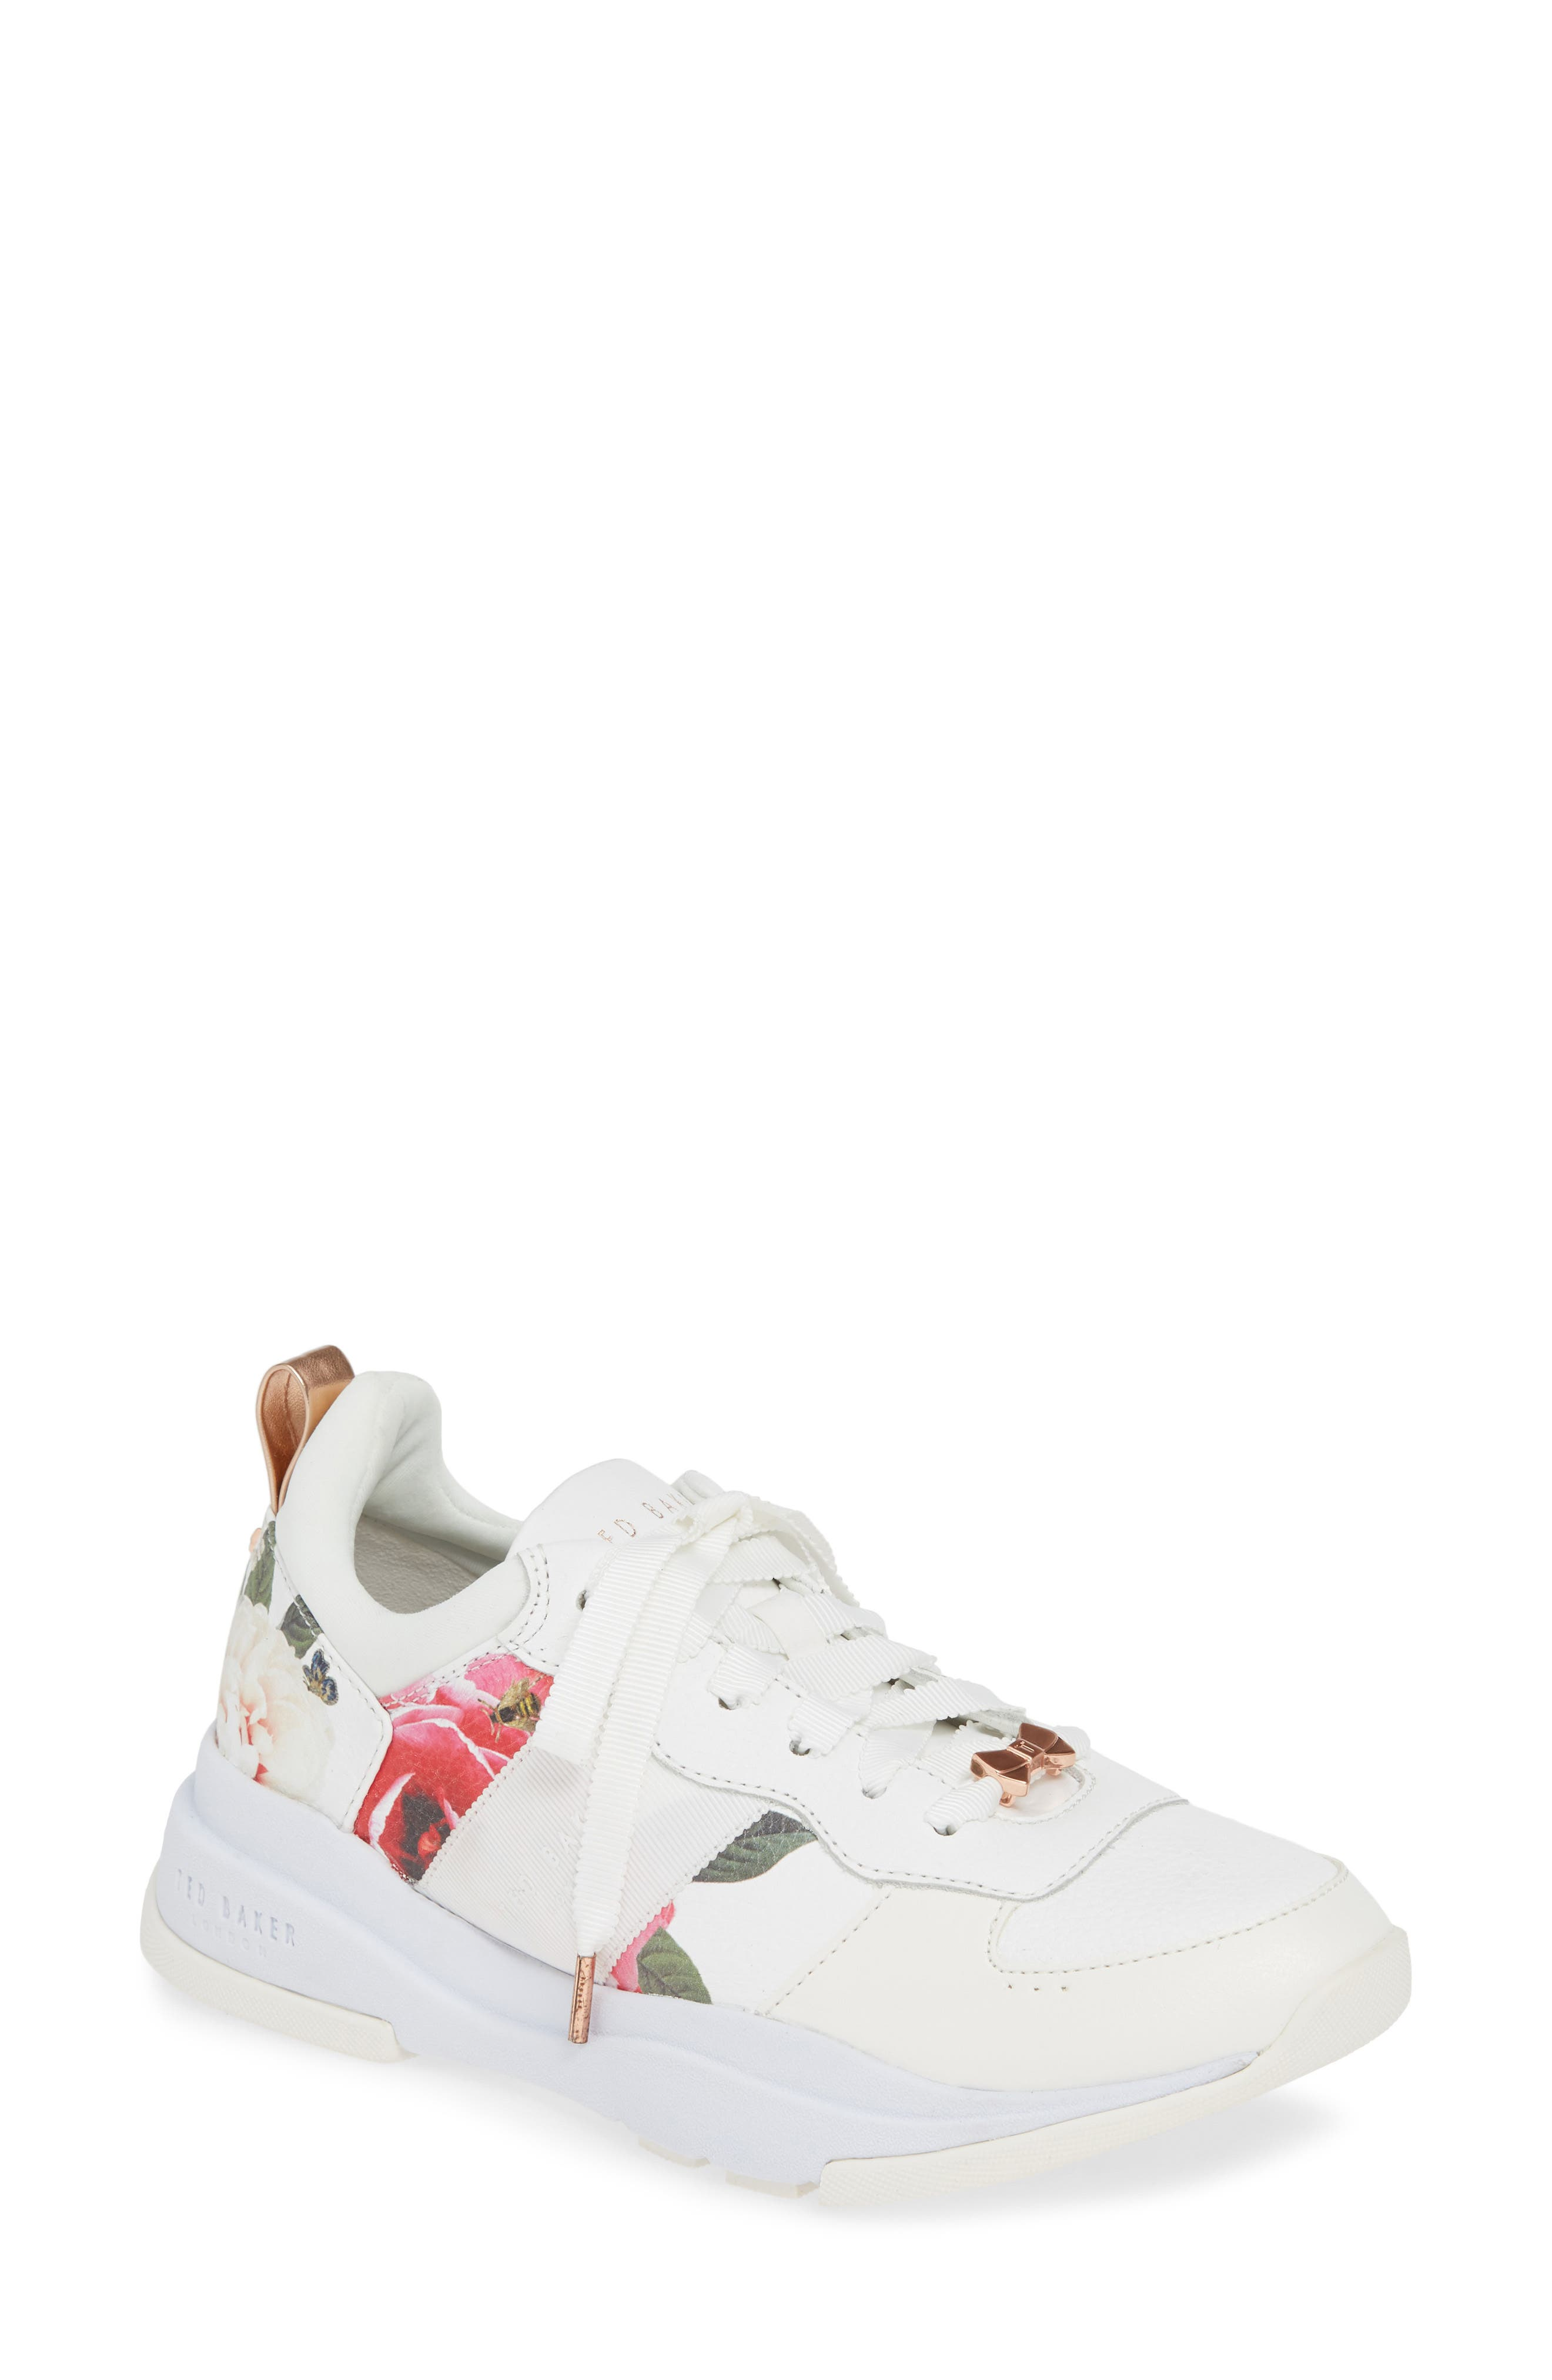 9ee28faca0f6 Women s Ted Baker London Sneakers